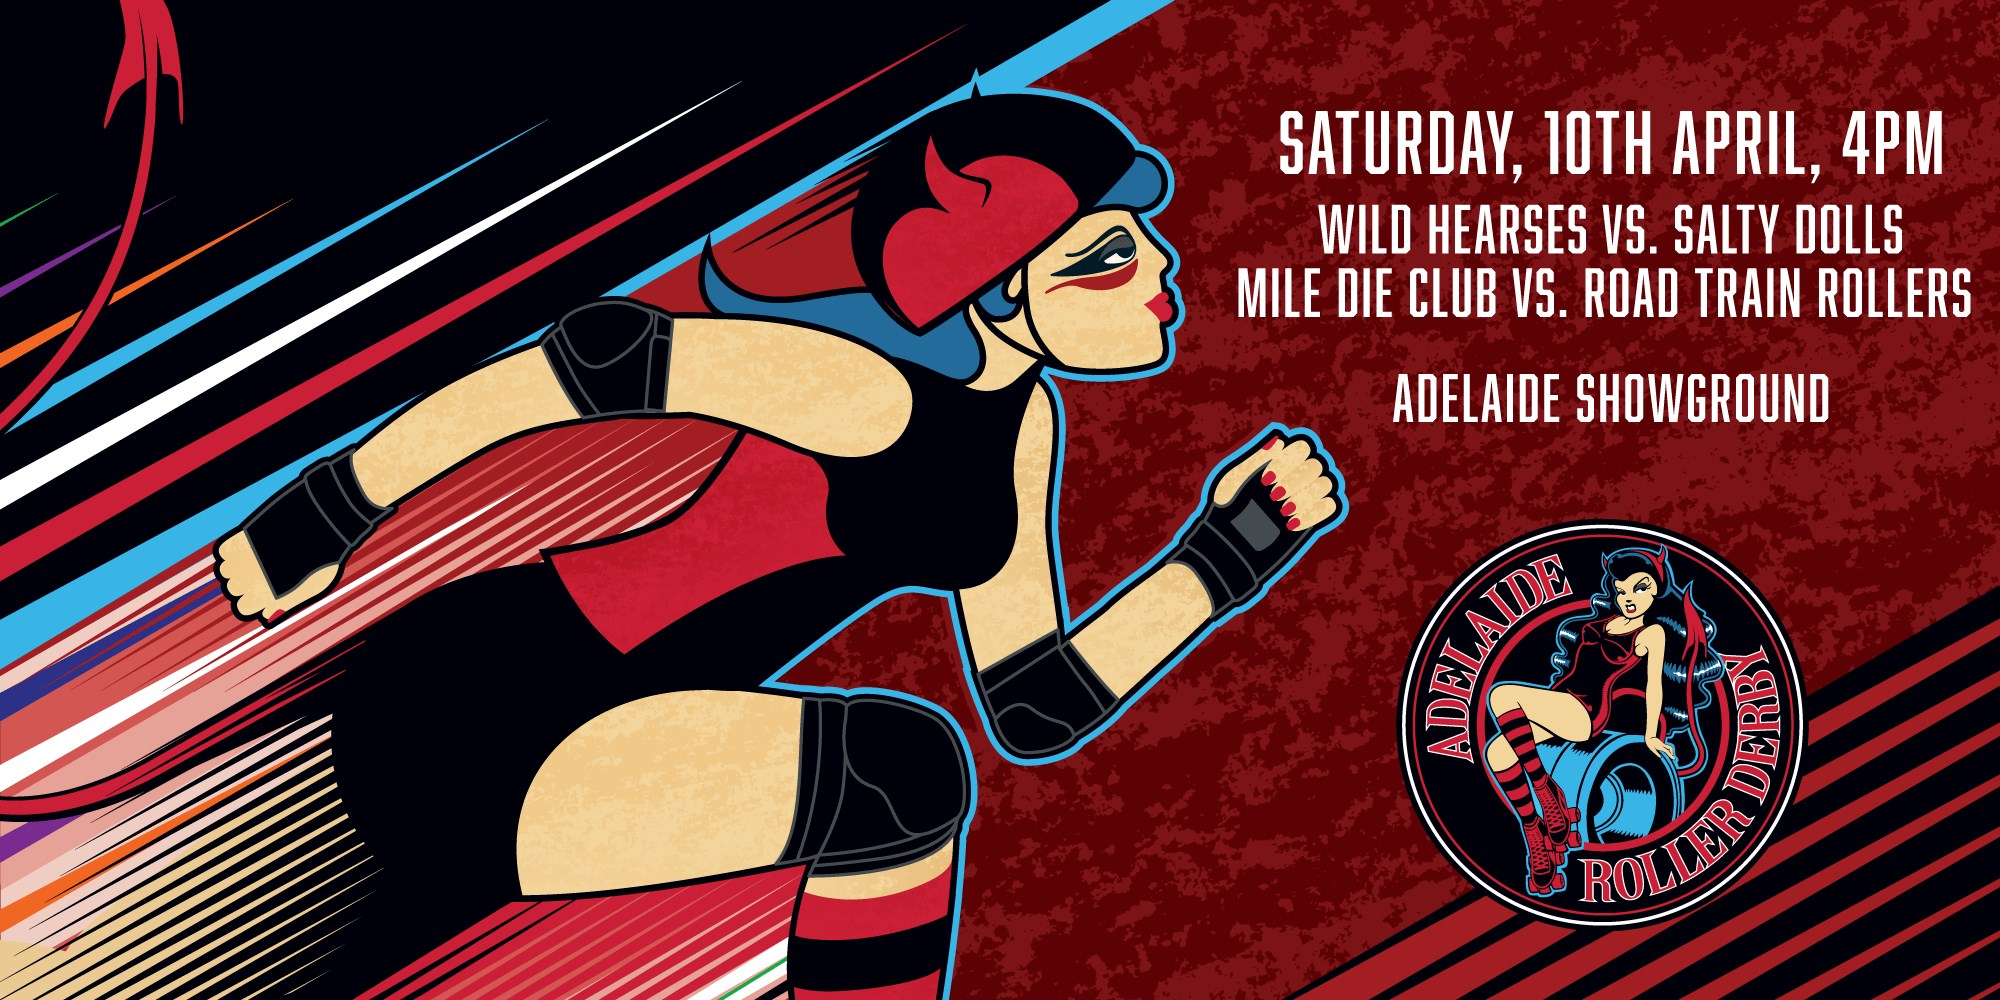 ADELAIDE ROLLER DERBY 2021 SEASON KICKS OFF APRIL 10 WITH AN EPIC DOUBLE HEADER